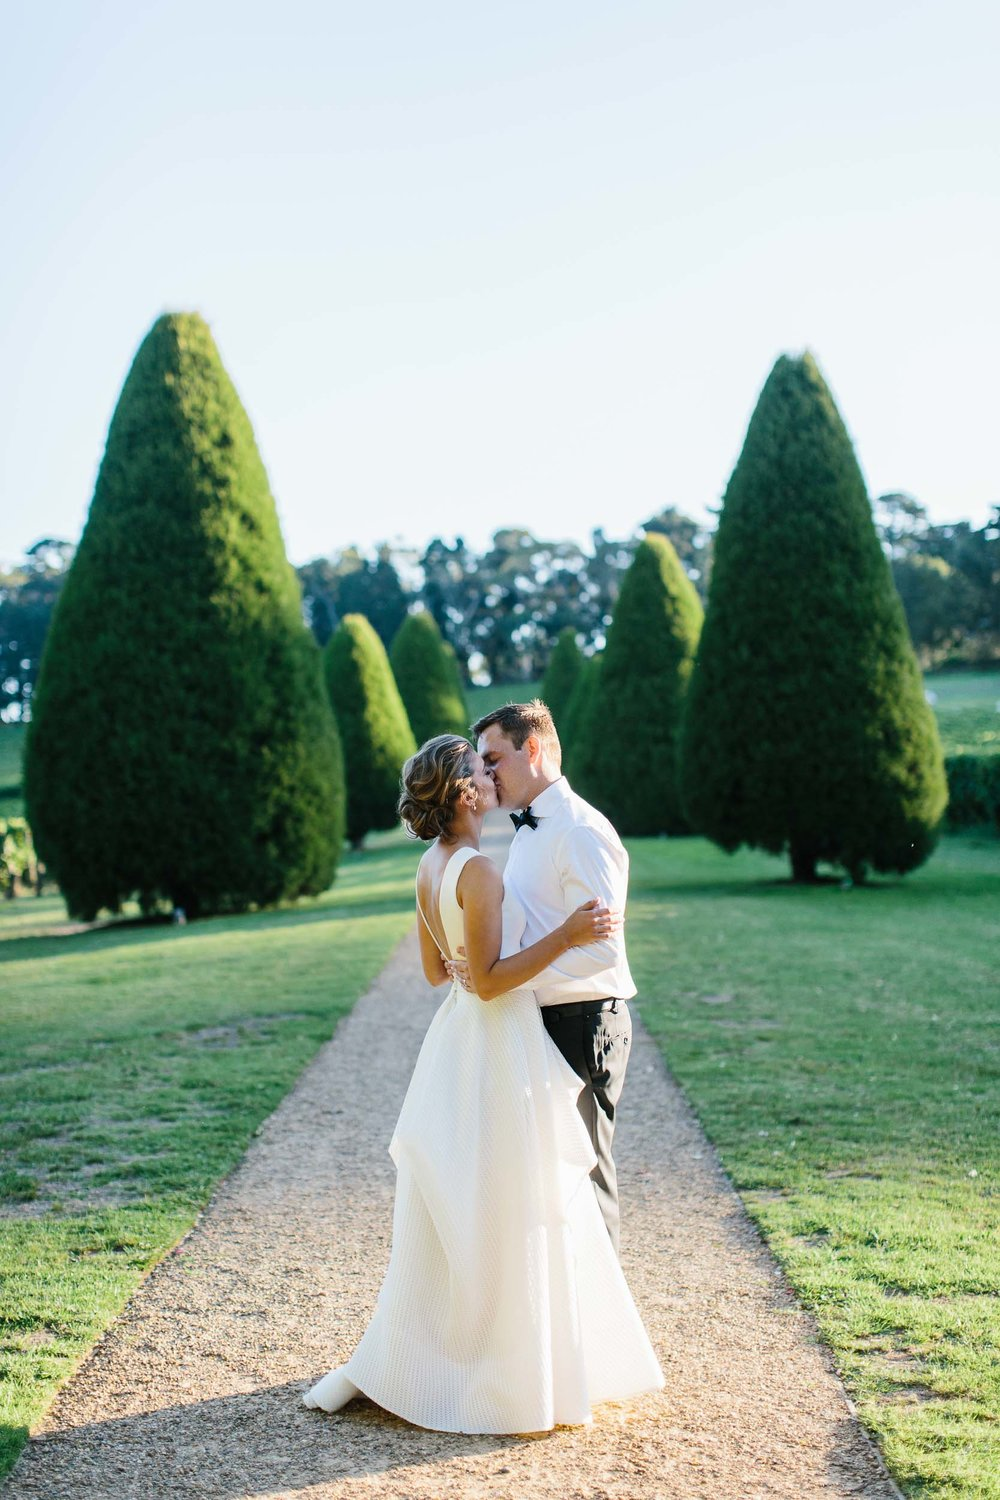 Kas-Richards-Mornington-Peninsula-Wedding-Lindenderry-Red-Hill-575.jpg